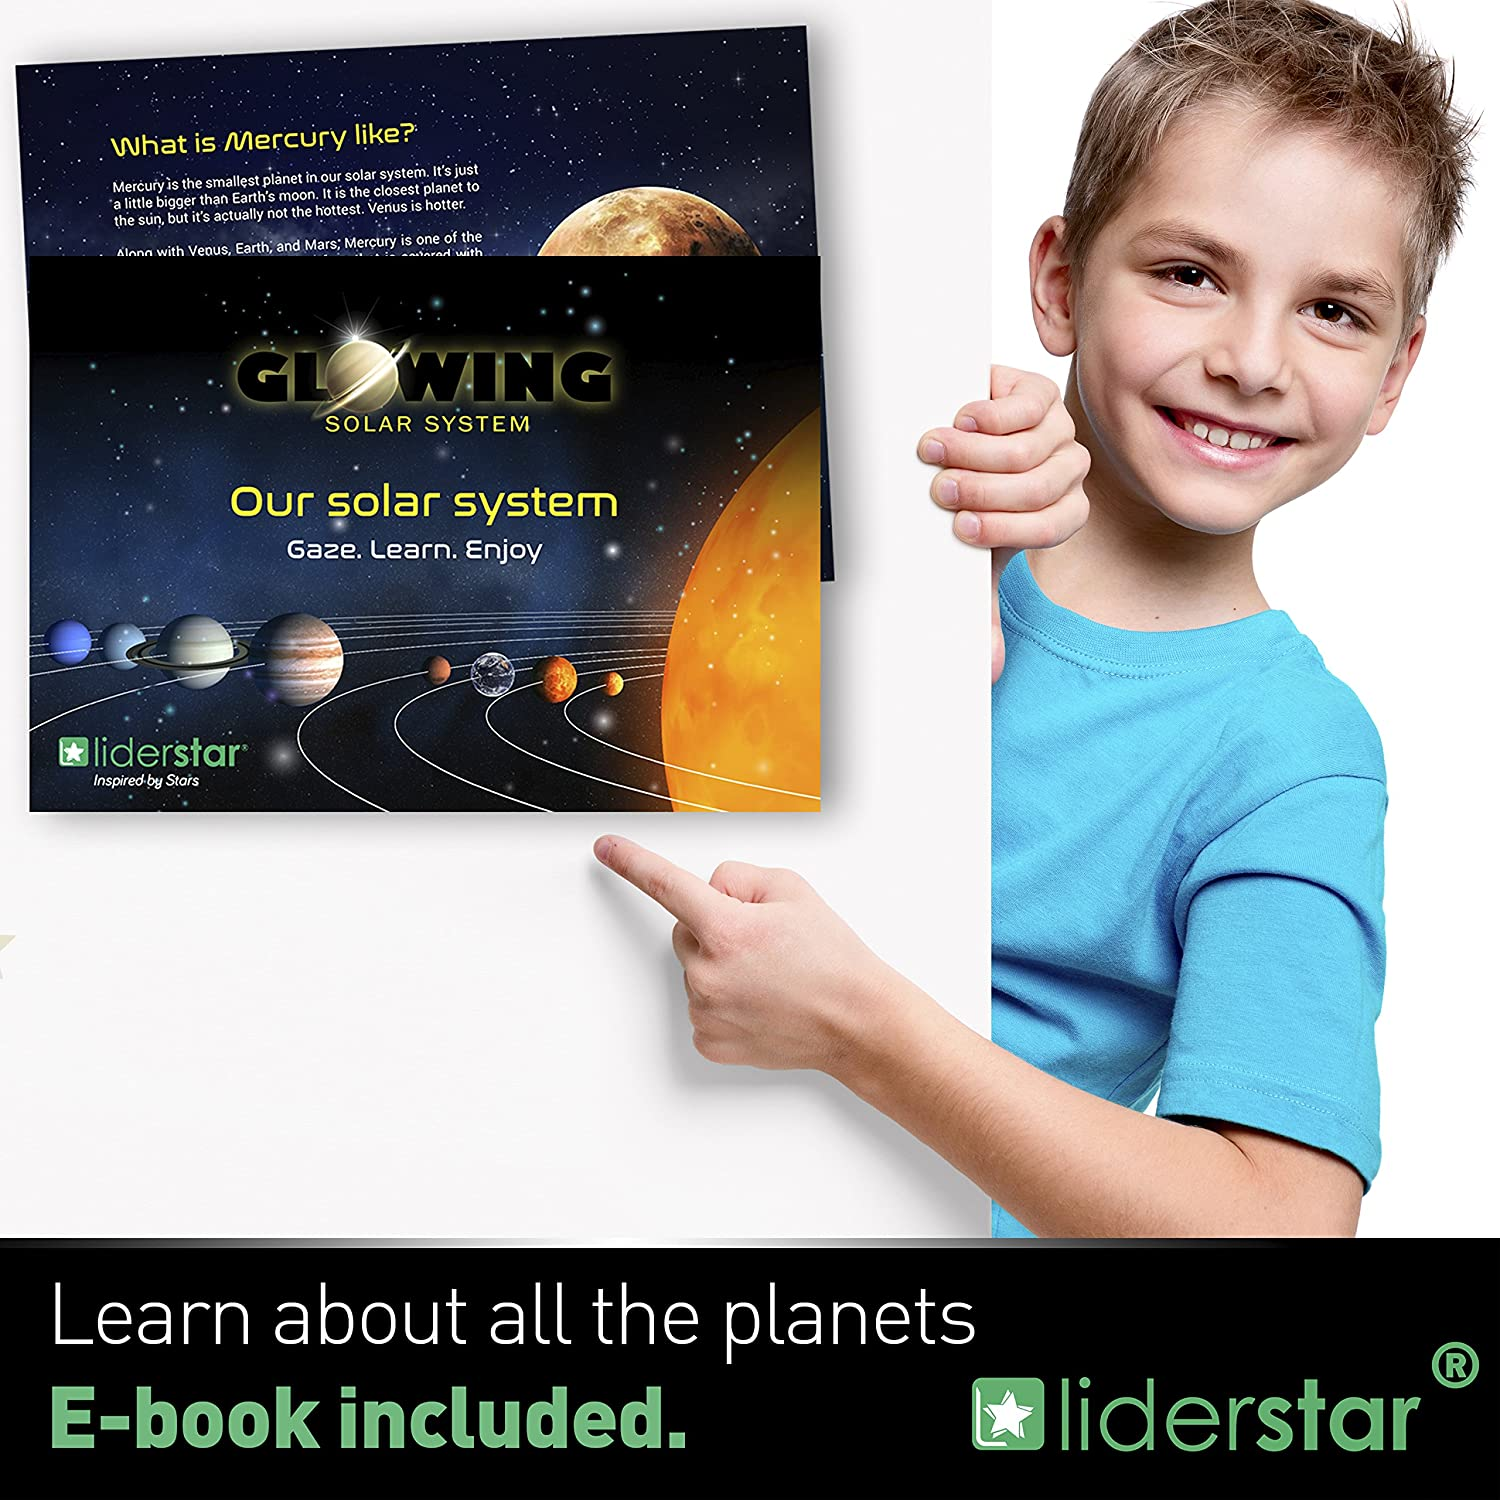 9 Glowing wall stickers LIDERSTAR Glow in the dark Stars and Planets EARTH Solar System :SUN Ceiling Decals to Light Up your Kid/'s Bedroom Space Room Decoration MARCH...